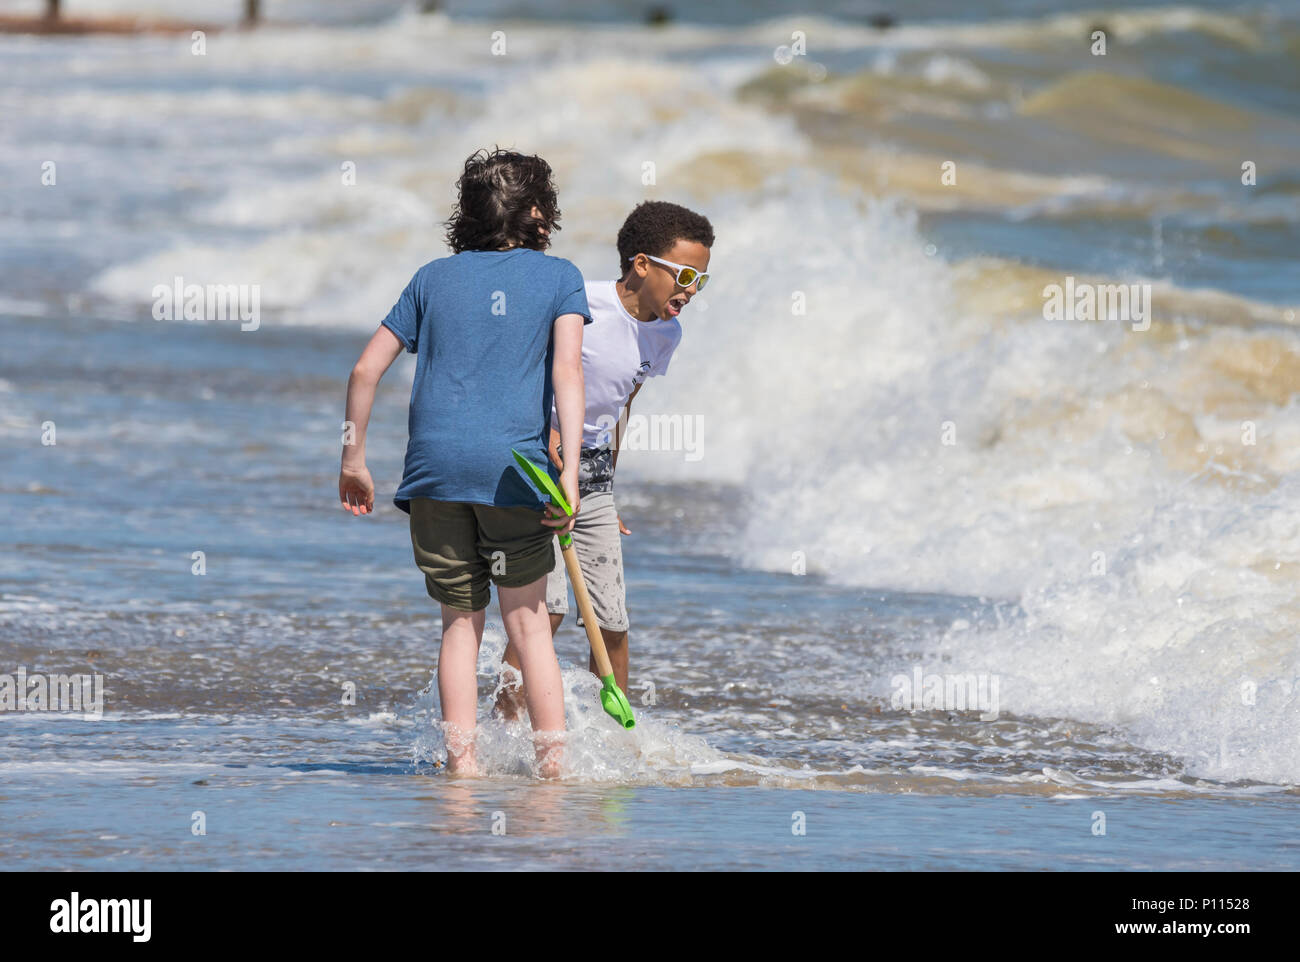 Pair of young boys on a beach at the seaside playing as the waves break nearby in England, UK. Boys look to be of different ethnic backgrounds. - Stock Image